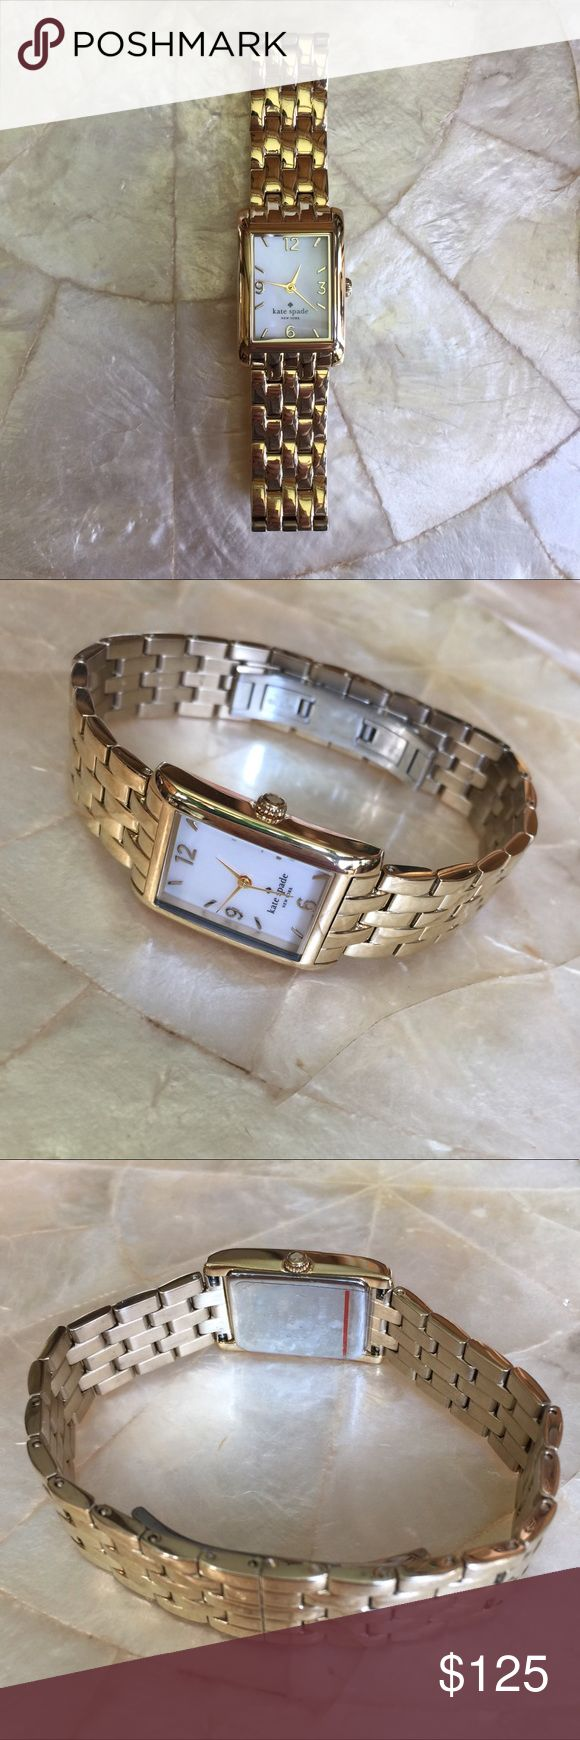 Kate Spade In a New York Minute Watch 1YRU0036 100% authentic Kate Spade In a New York Minute Women's Watch 1YRU0036. Mother of pearl dial. Quartz movement. Case dimensions: 21 mm x 32 mm. Mint condition. kate spade Accessories Watches